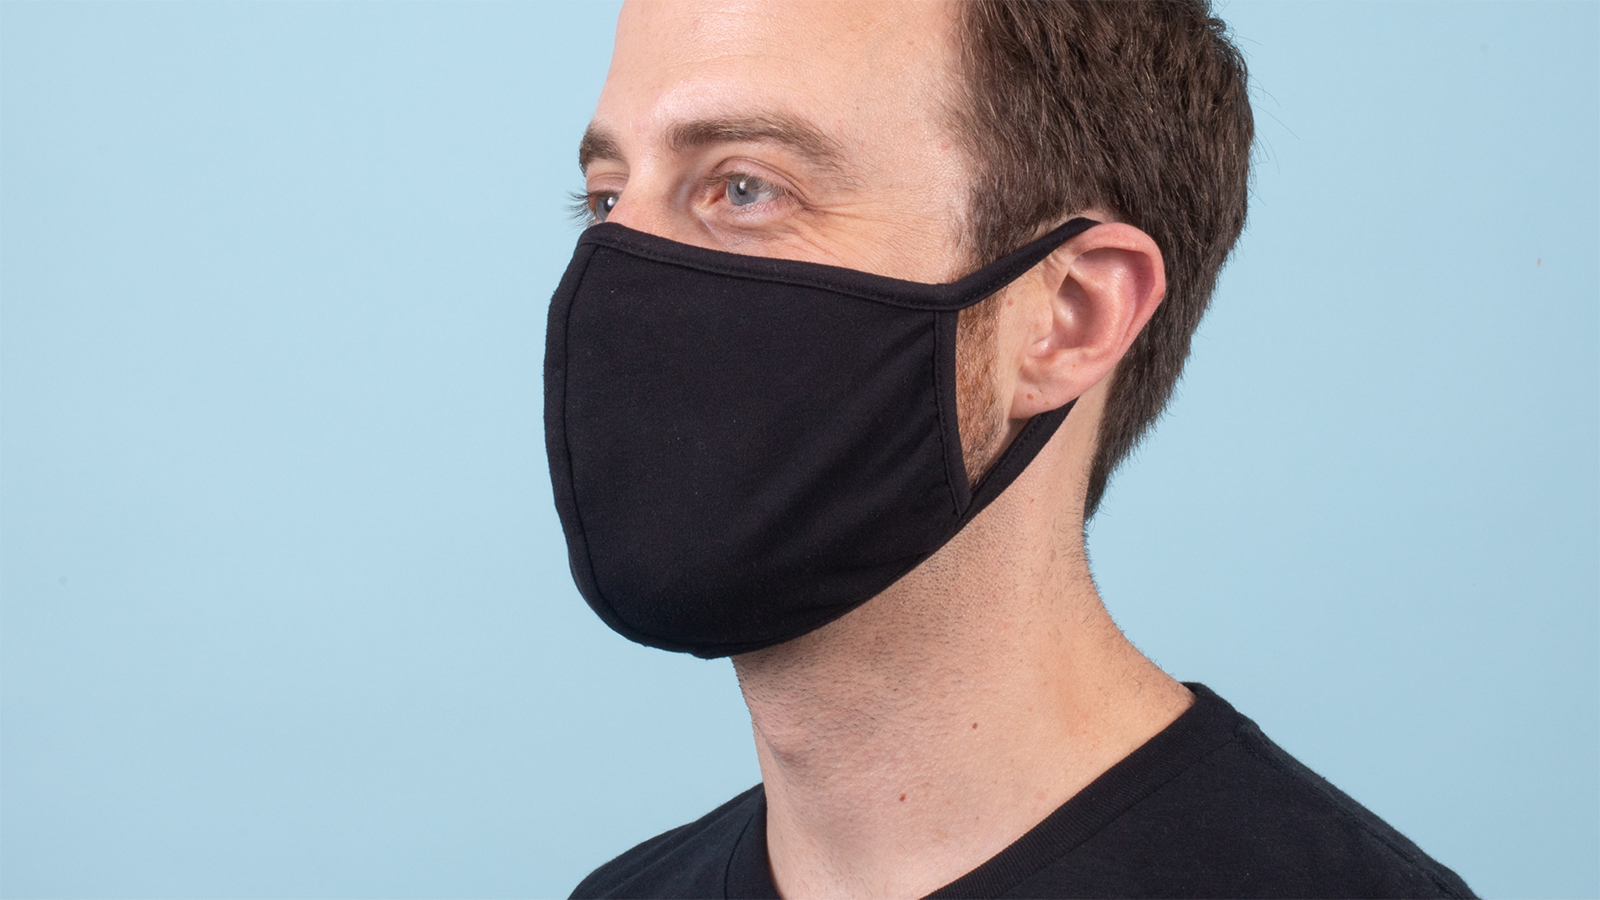 Our Face Masks: The Ugmonk Face Mask